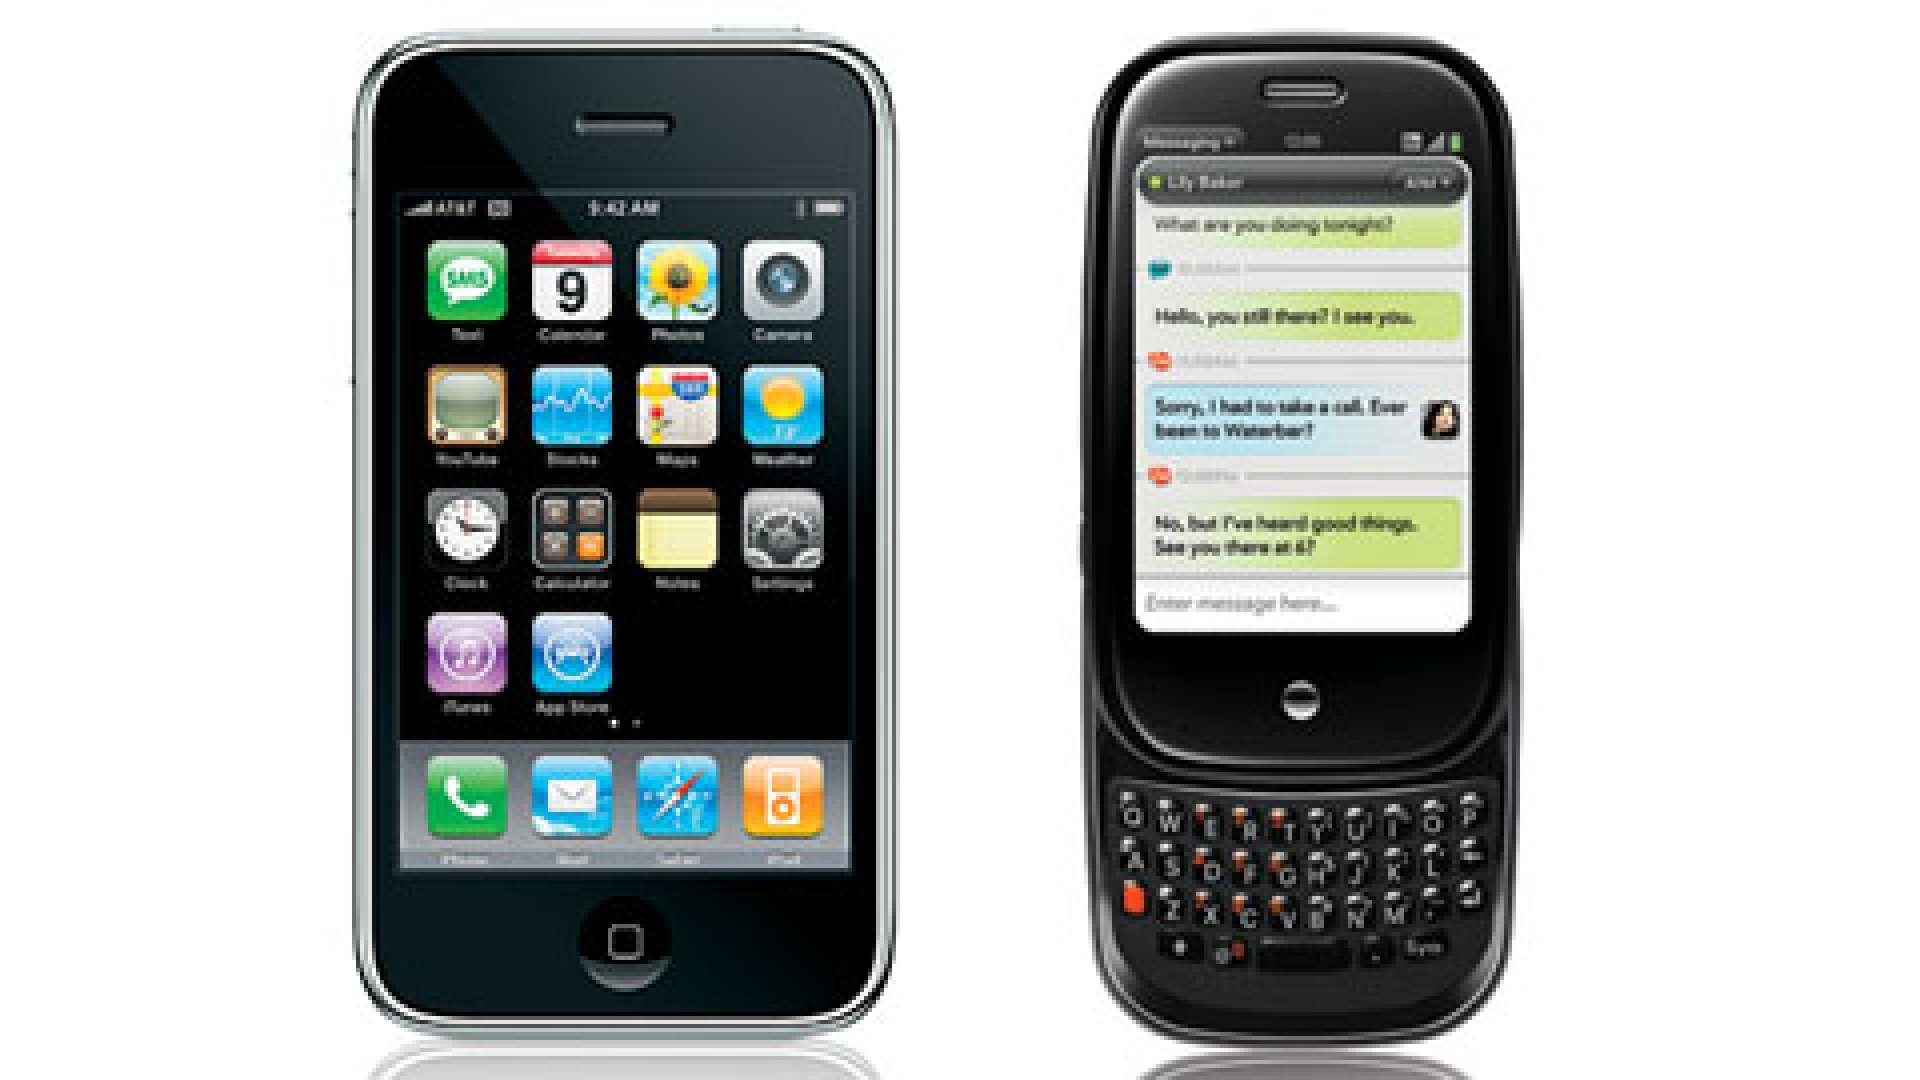 The Palm Pre Takes On the iPhone 3G S